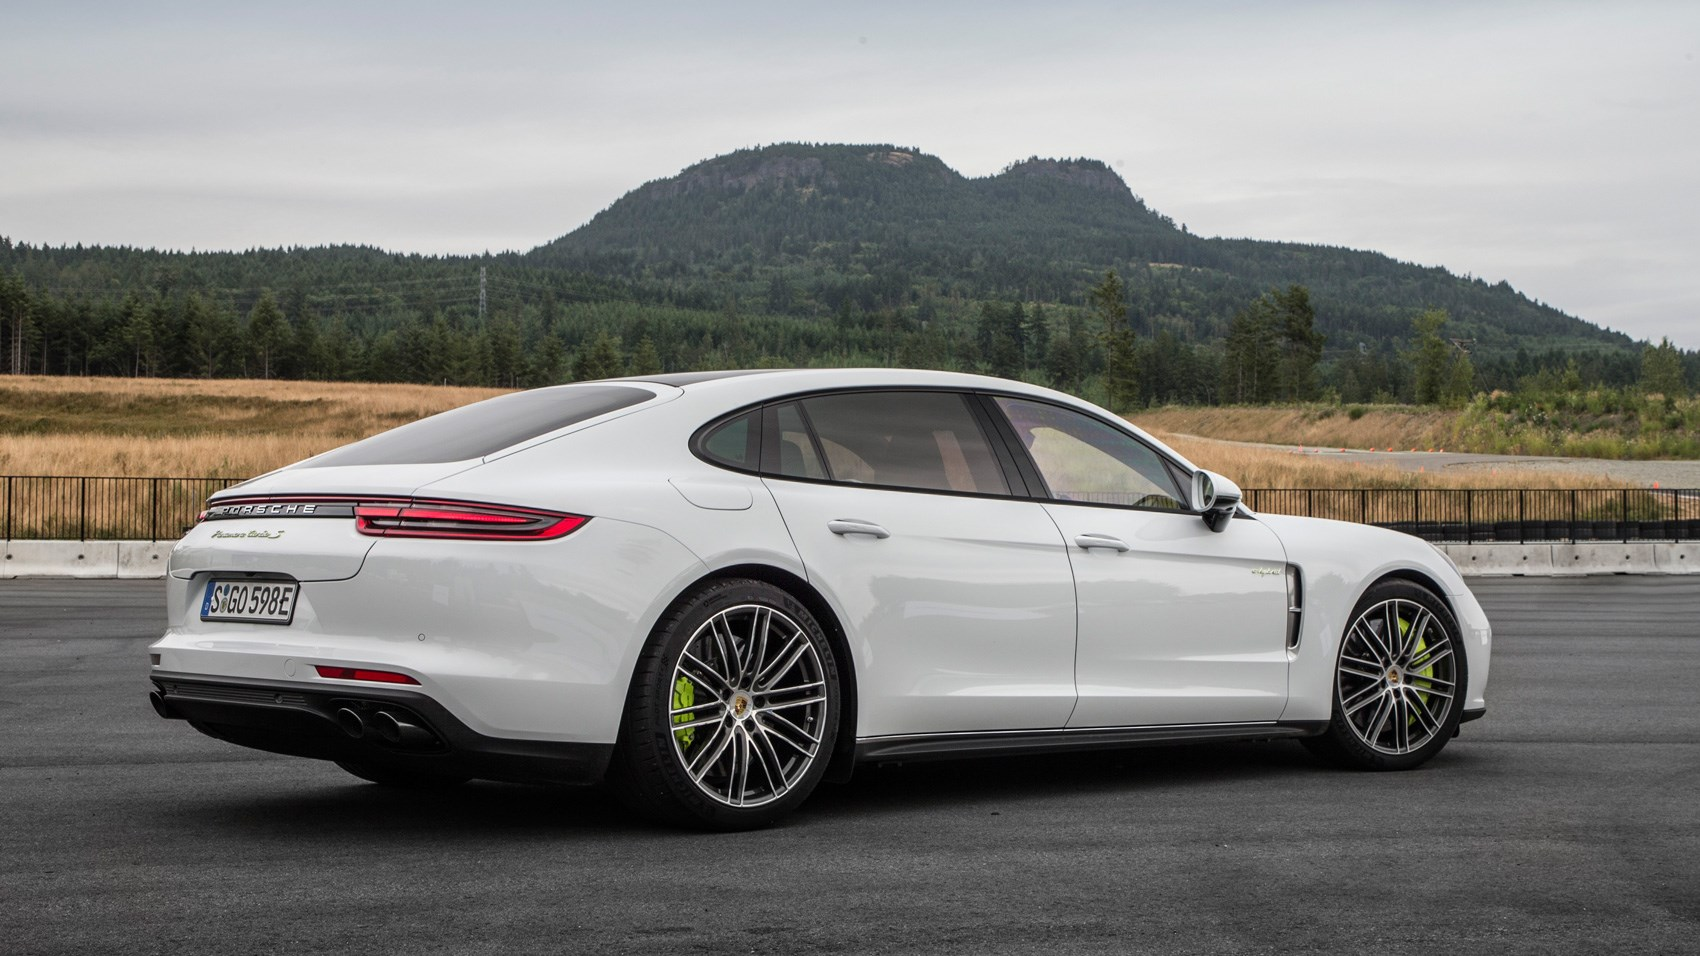 Porsche Panamera Turbo S E Hybrid 2017 Review By Car